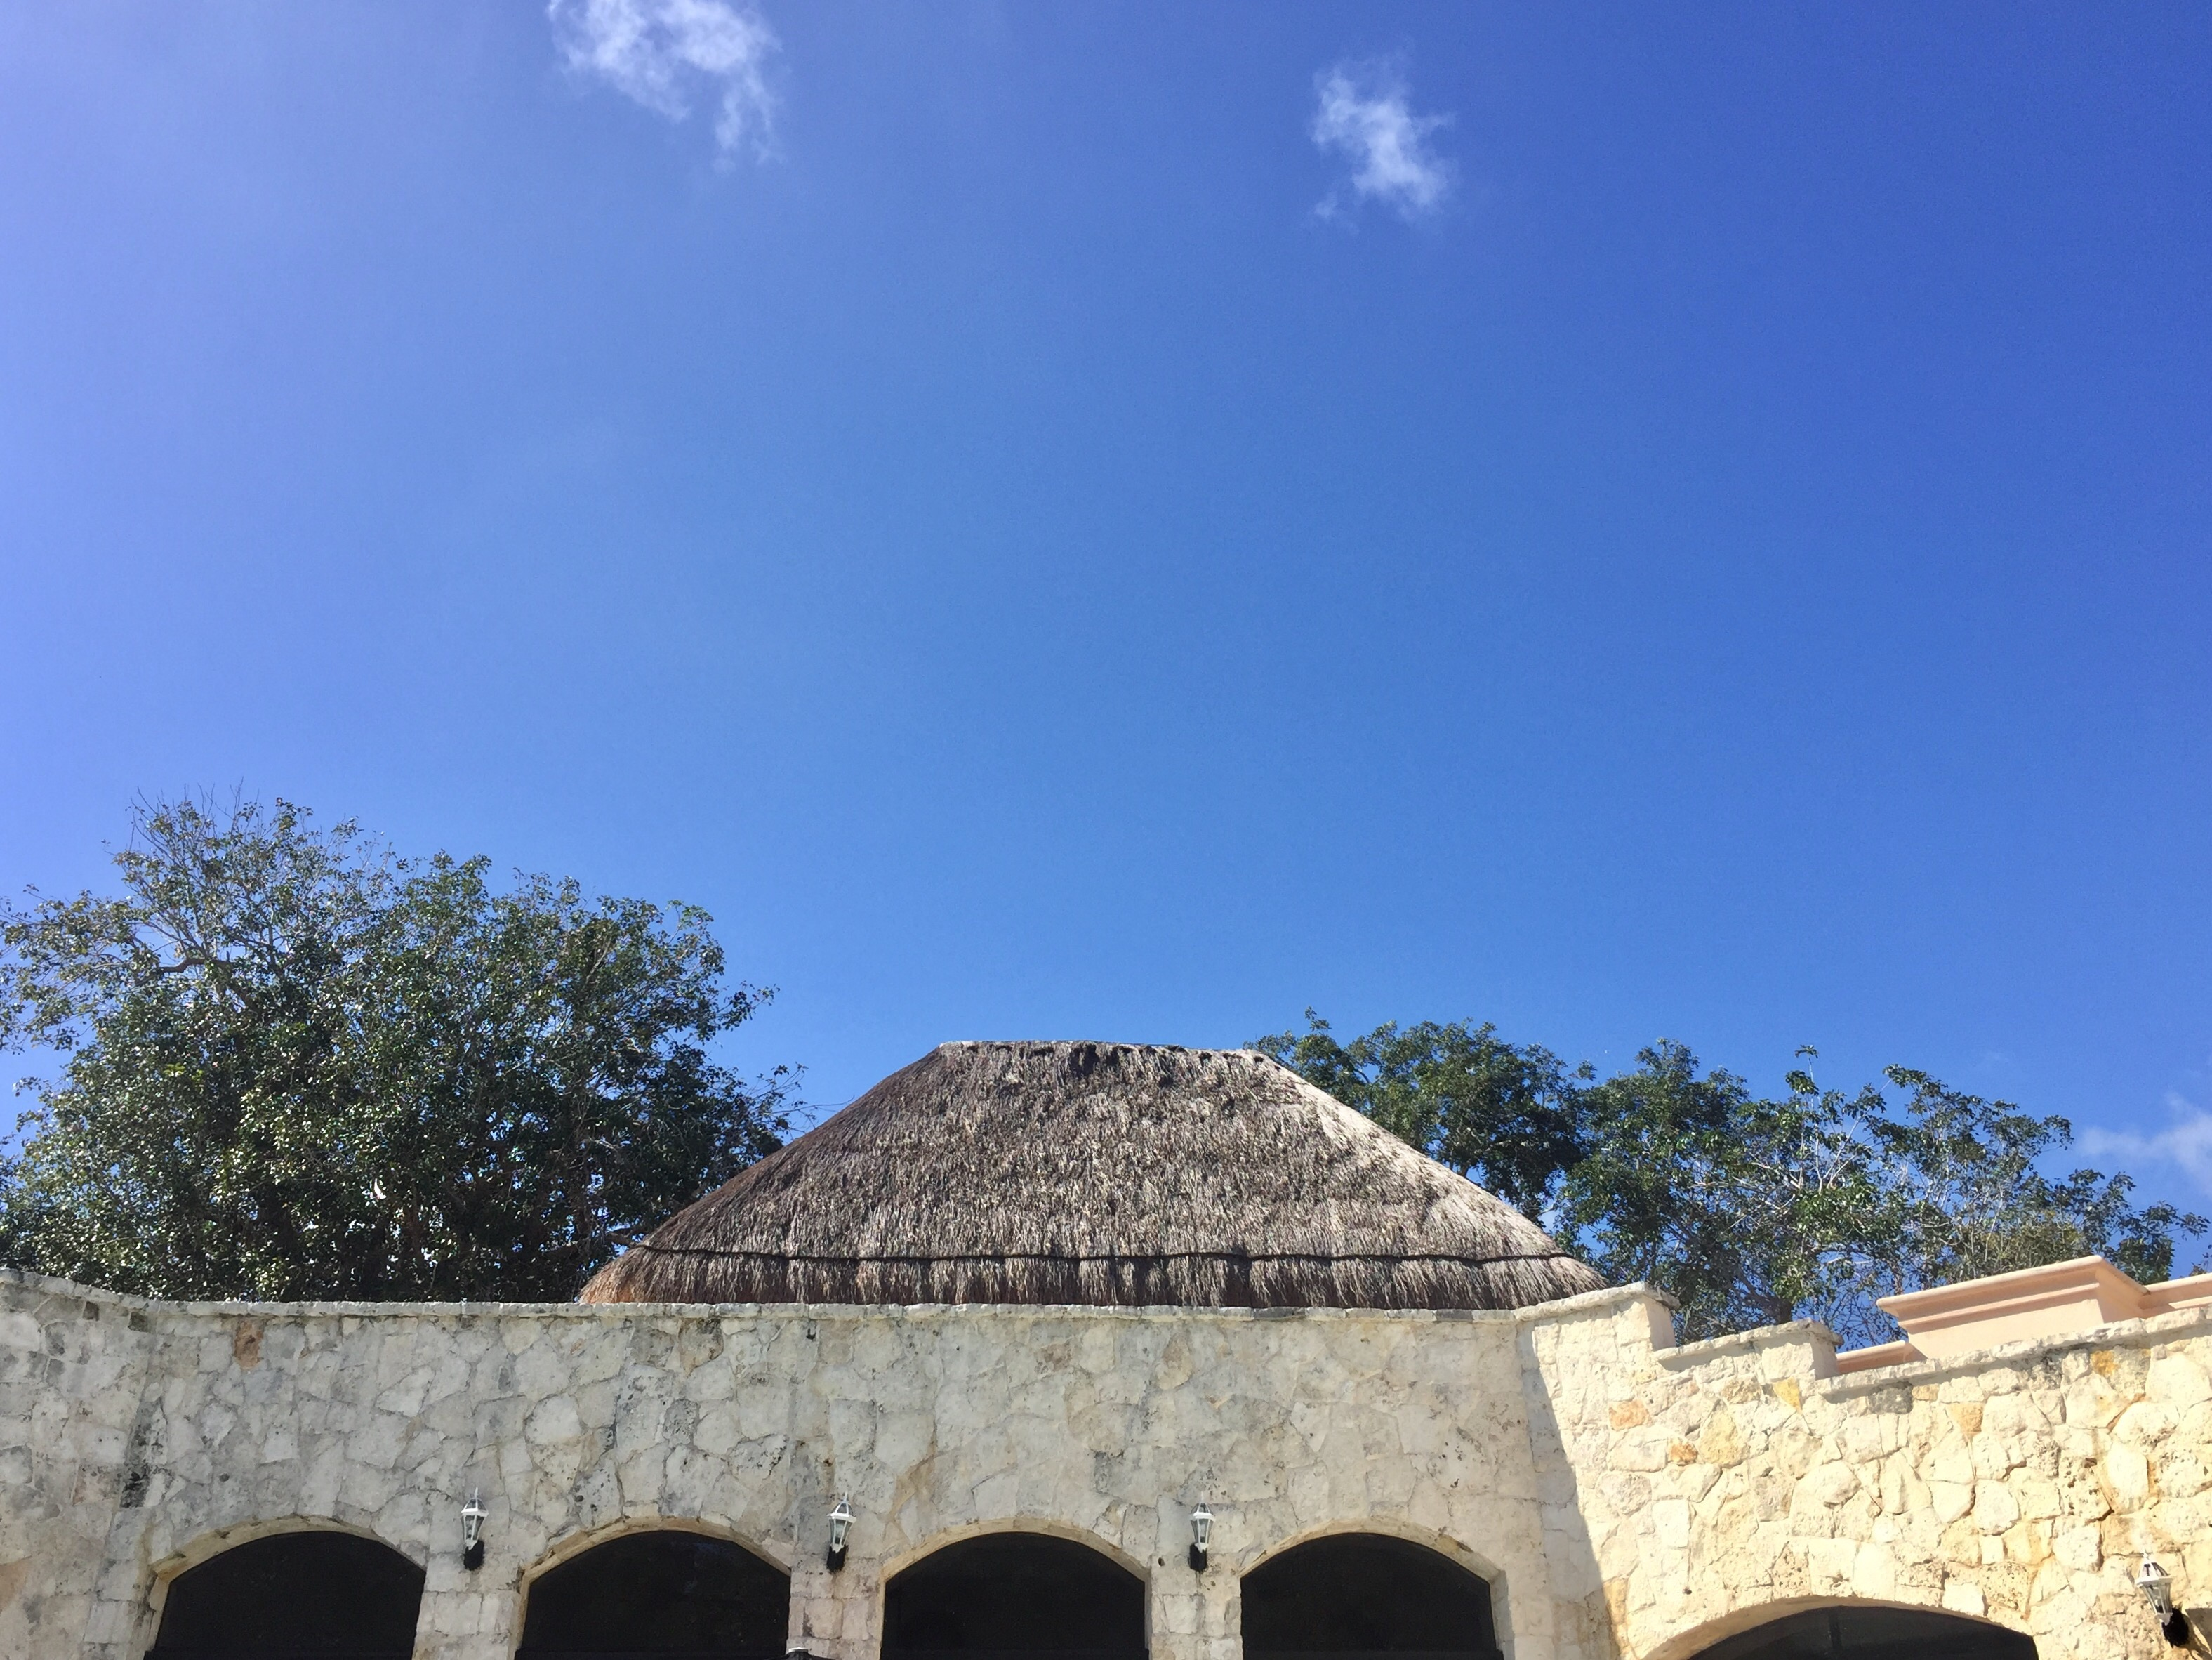 MEXICO TRAVEL DIARY: A LESS THAN IDEAL START